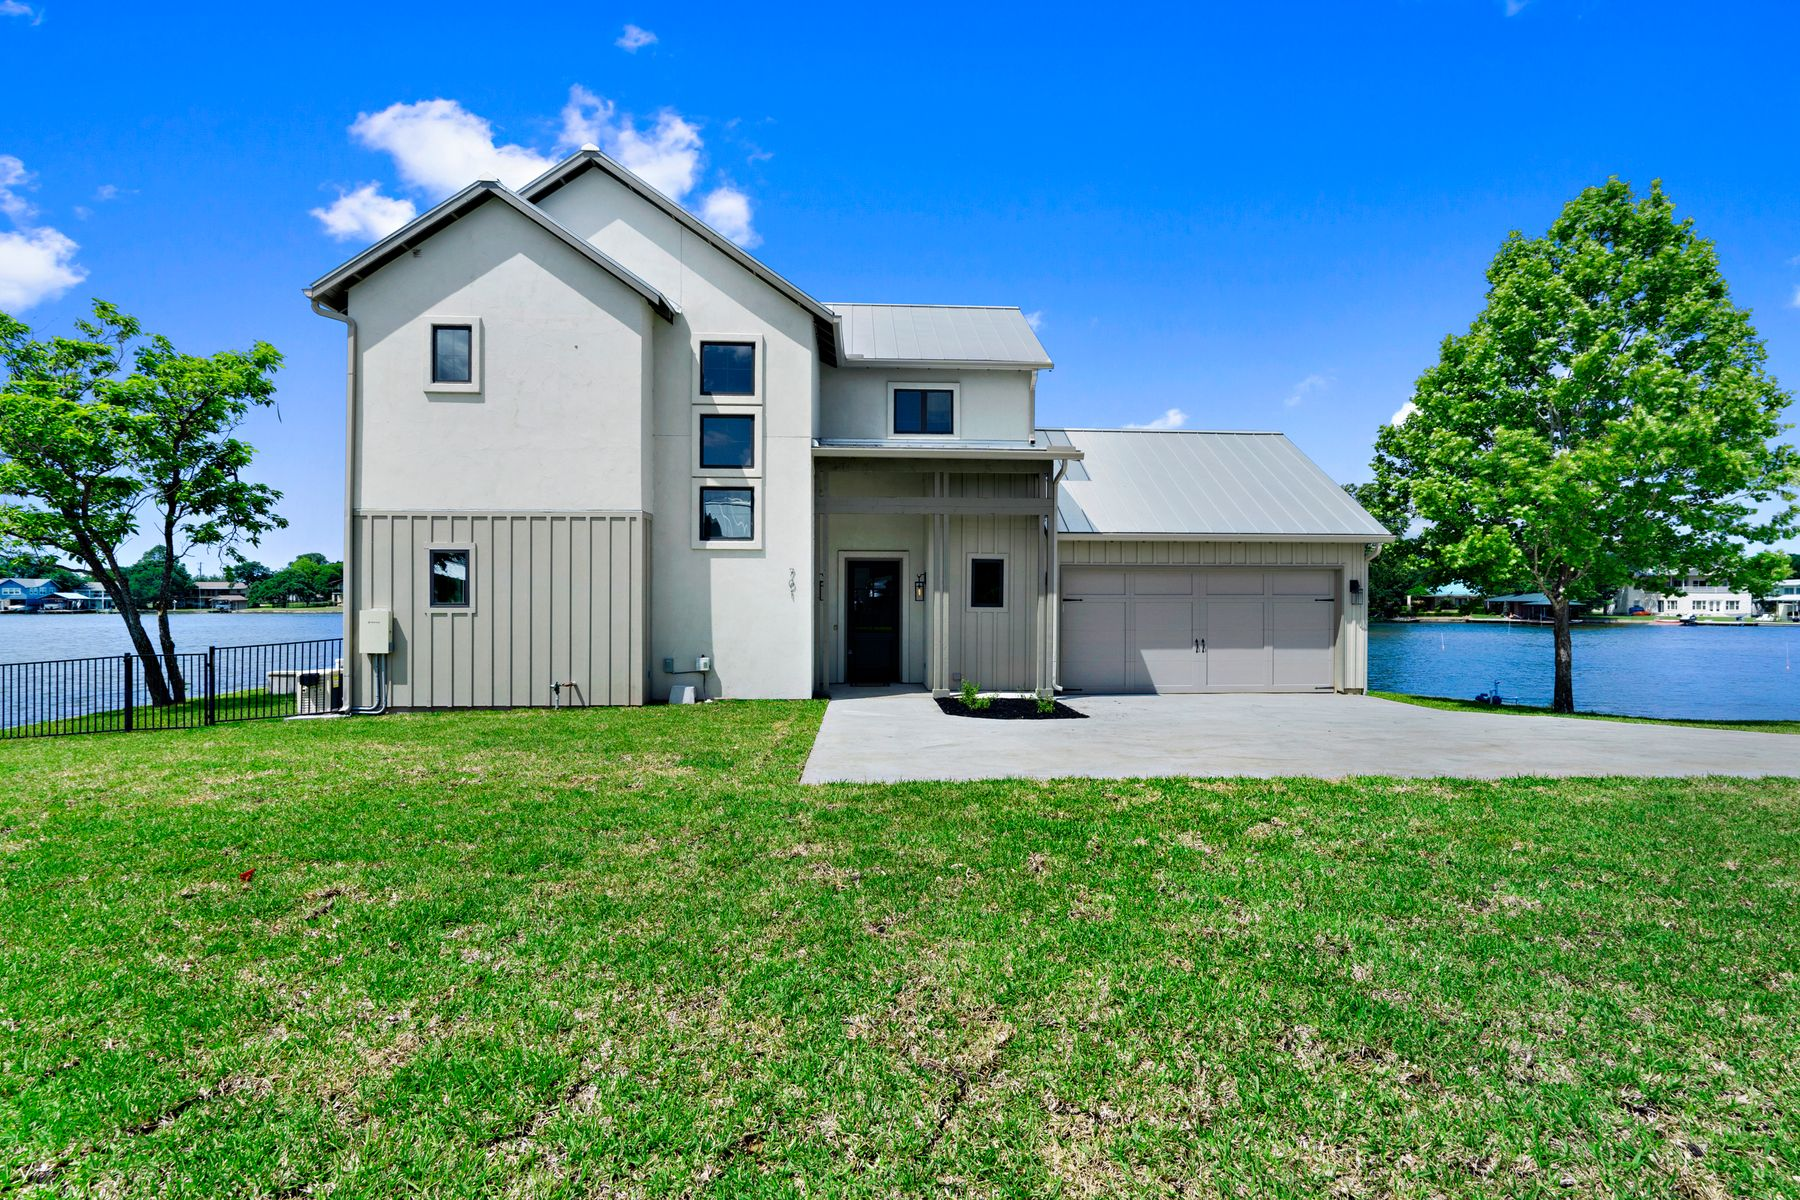 Single Family Homes for Active at Fantastic Modern Farmhouse /// New Construction on Lake LBJ 701 Woodland Hills Drive On Lake LBJ Marble Falls, Texas 78654 United States